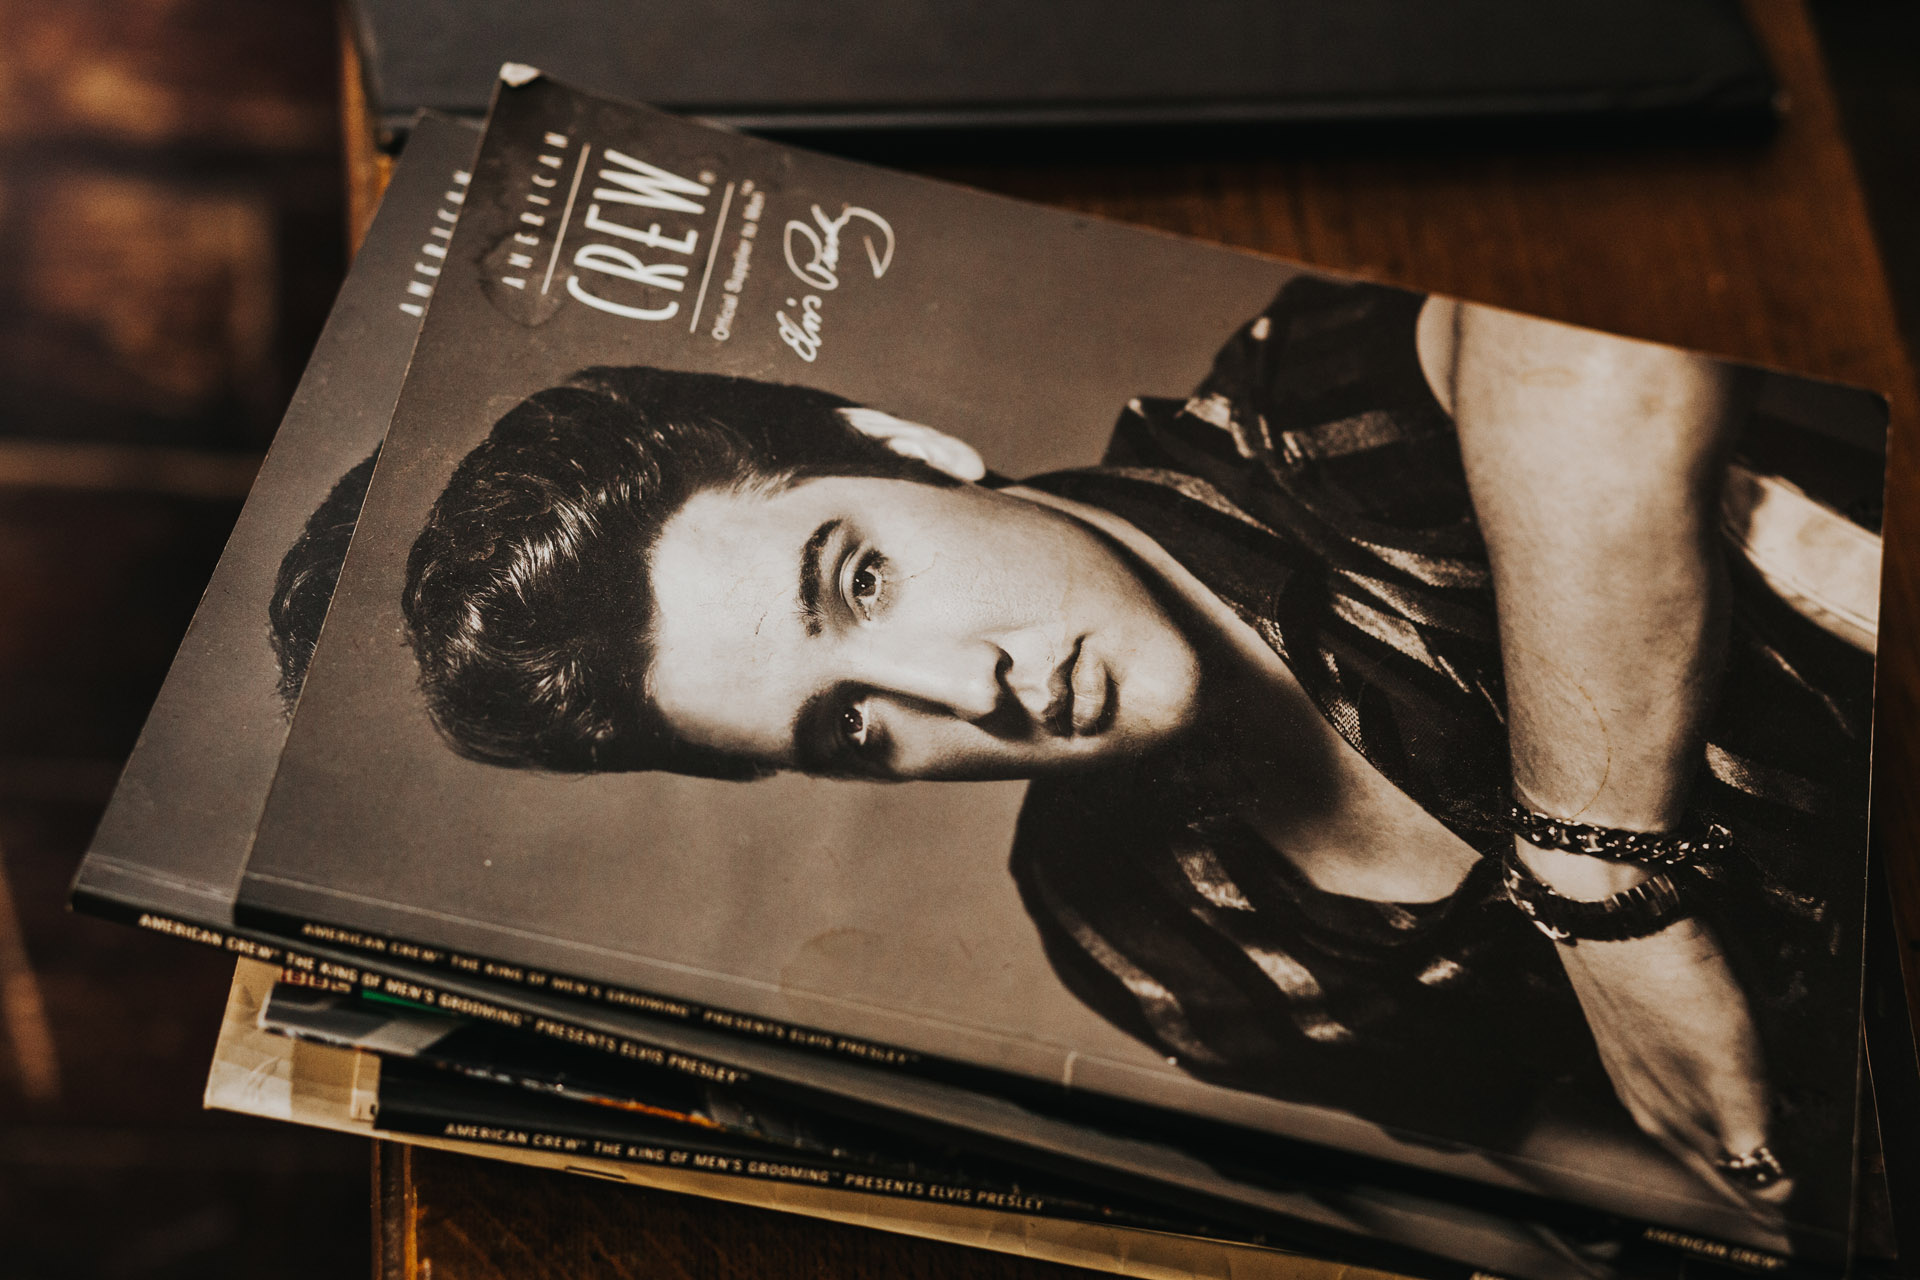 Magazine with a black and white photograph of Elvis on the cover